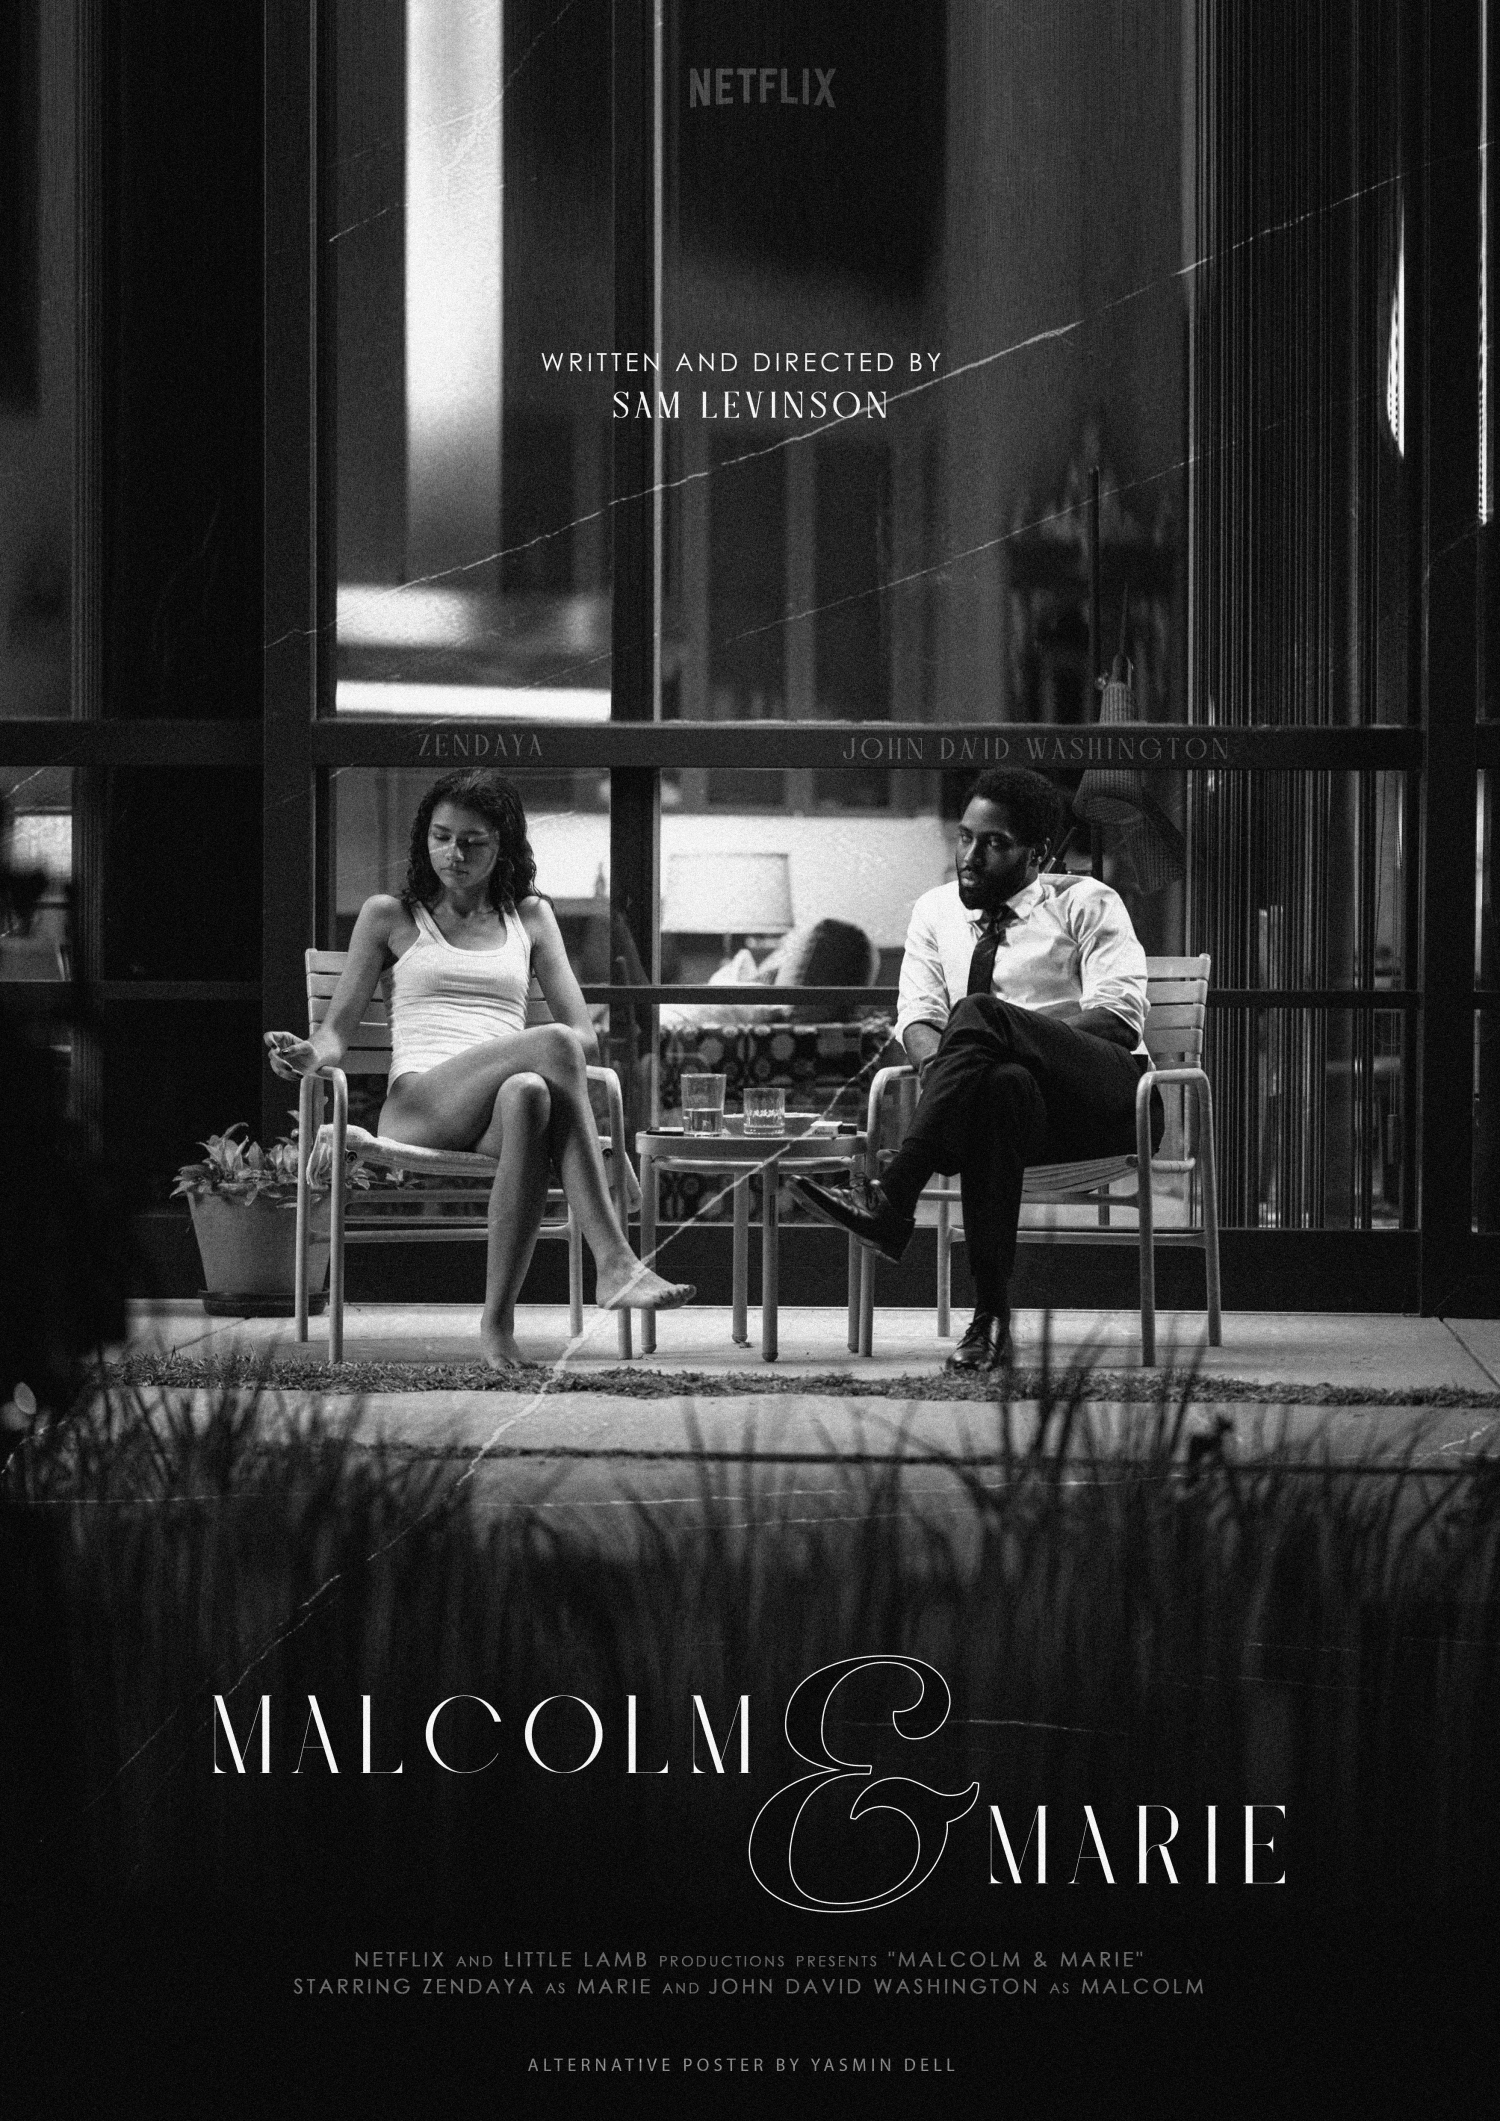 malcolm and marie movie poster netflix